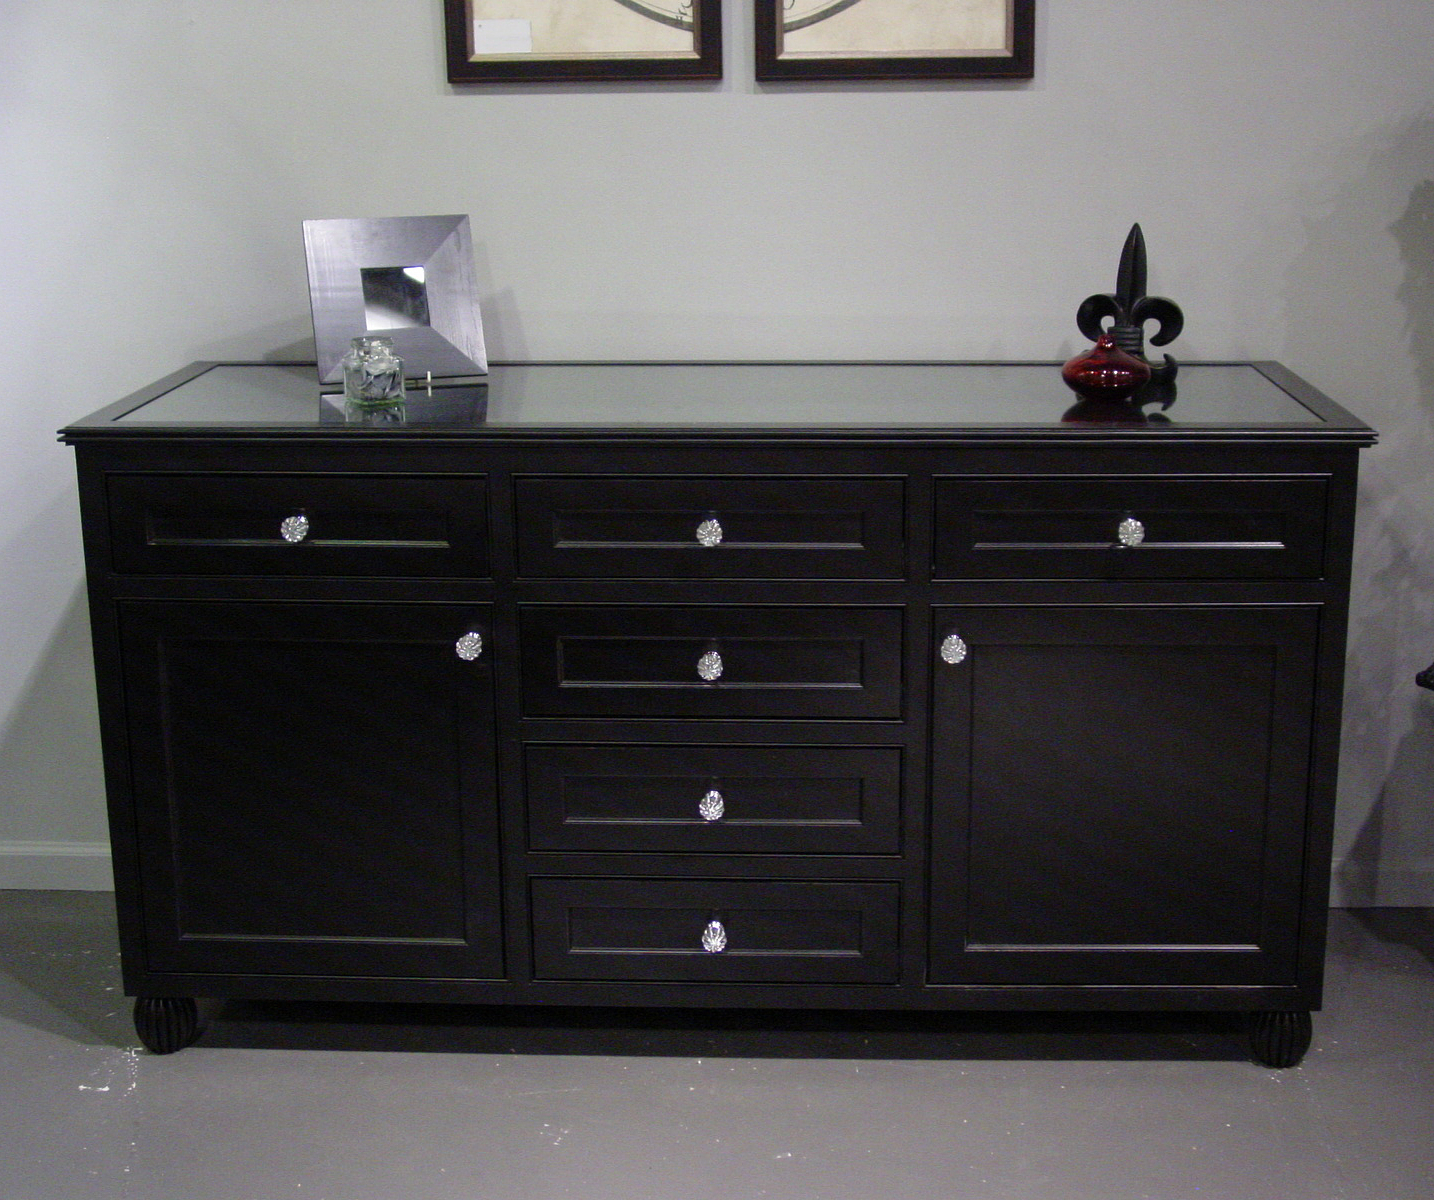 Satin Black & Painted White Sideboards For Well Known Black Painted Dresser With Glass Top (View 16 of 20)